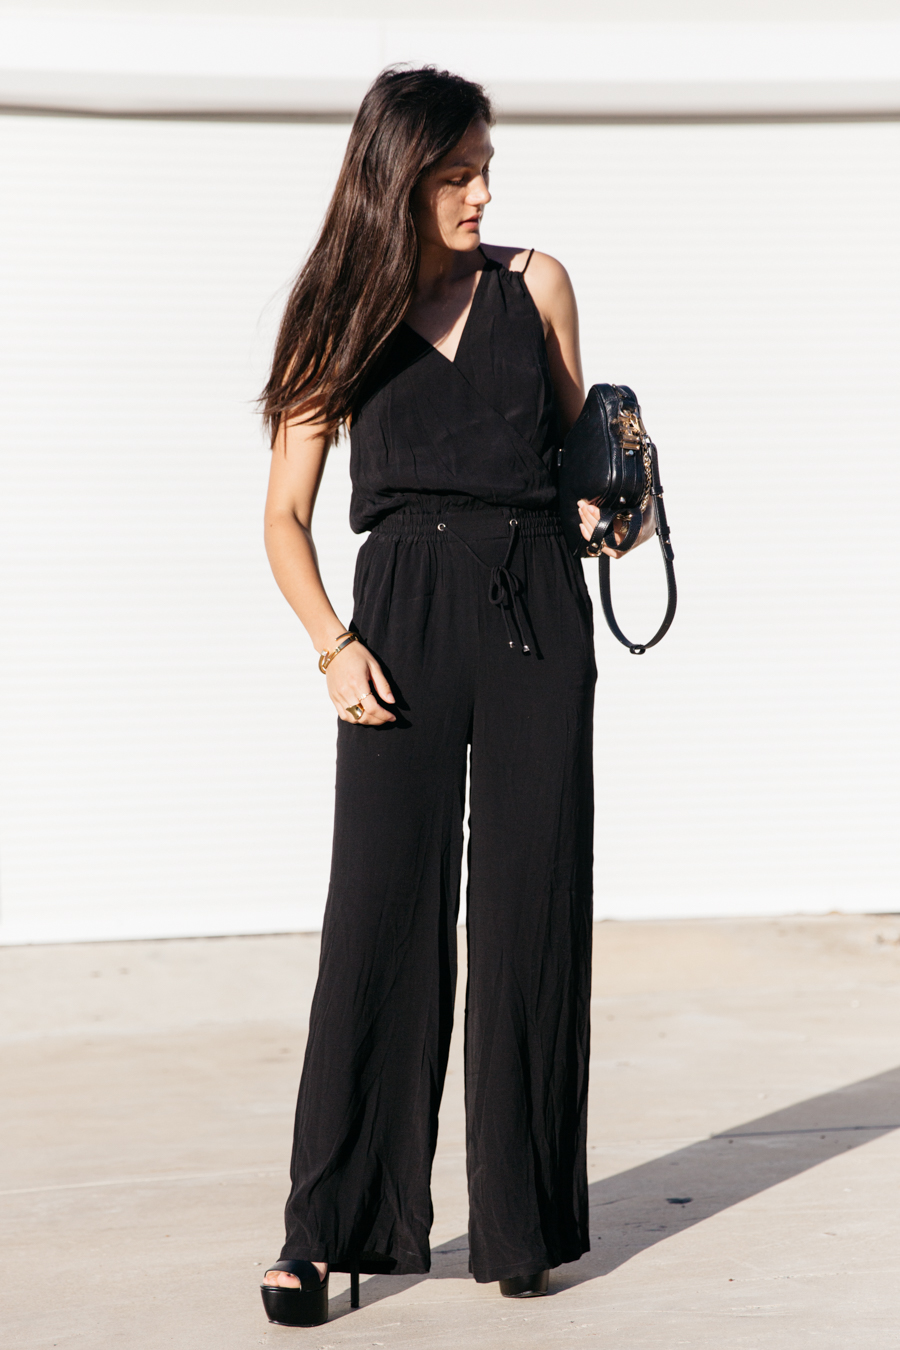 Black jumpsuit one piece with heels.